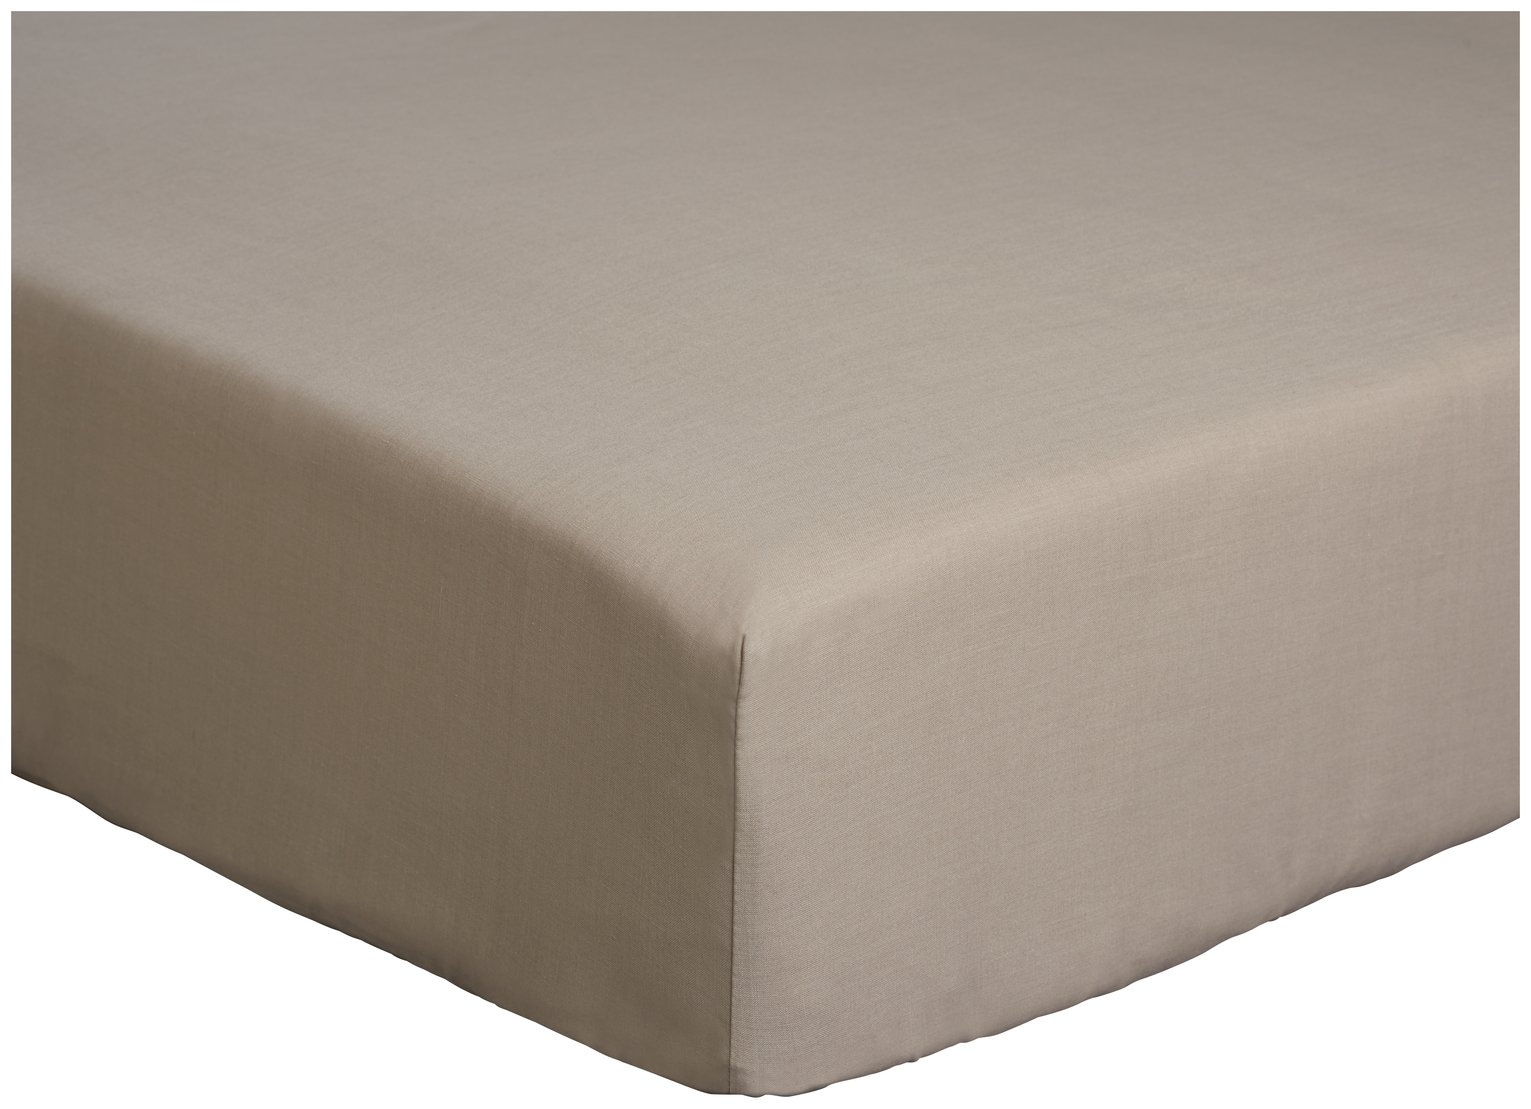 Argos Home Stone Fitted Sheet review